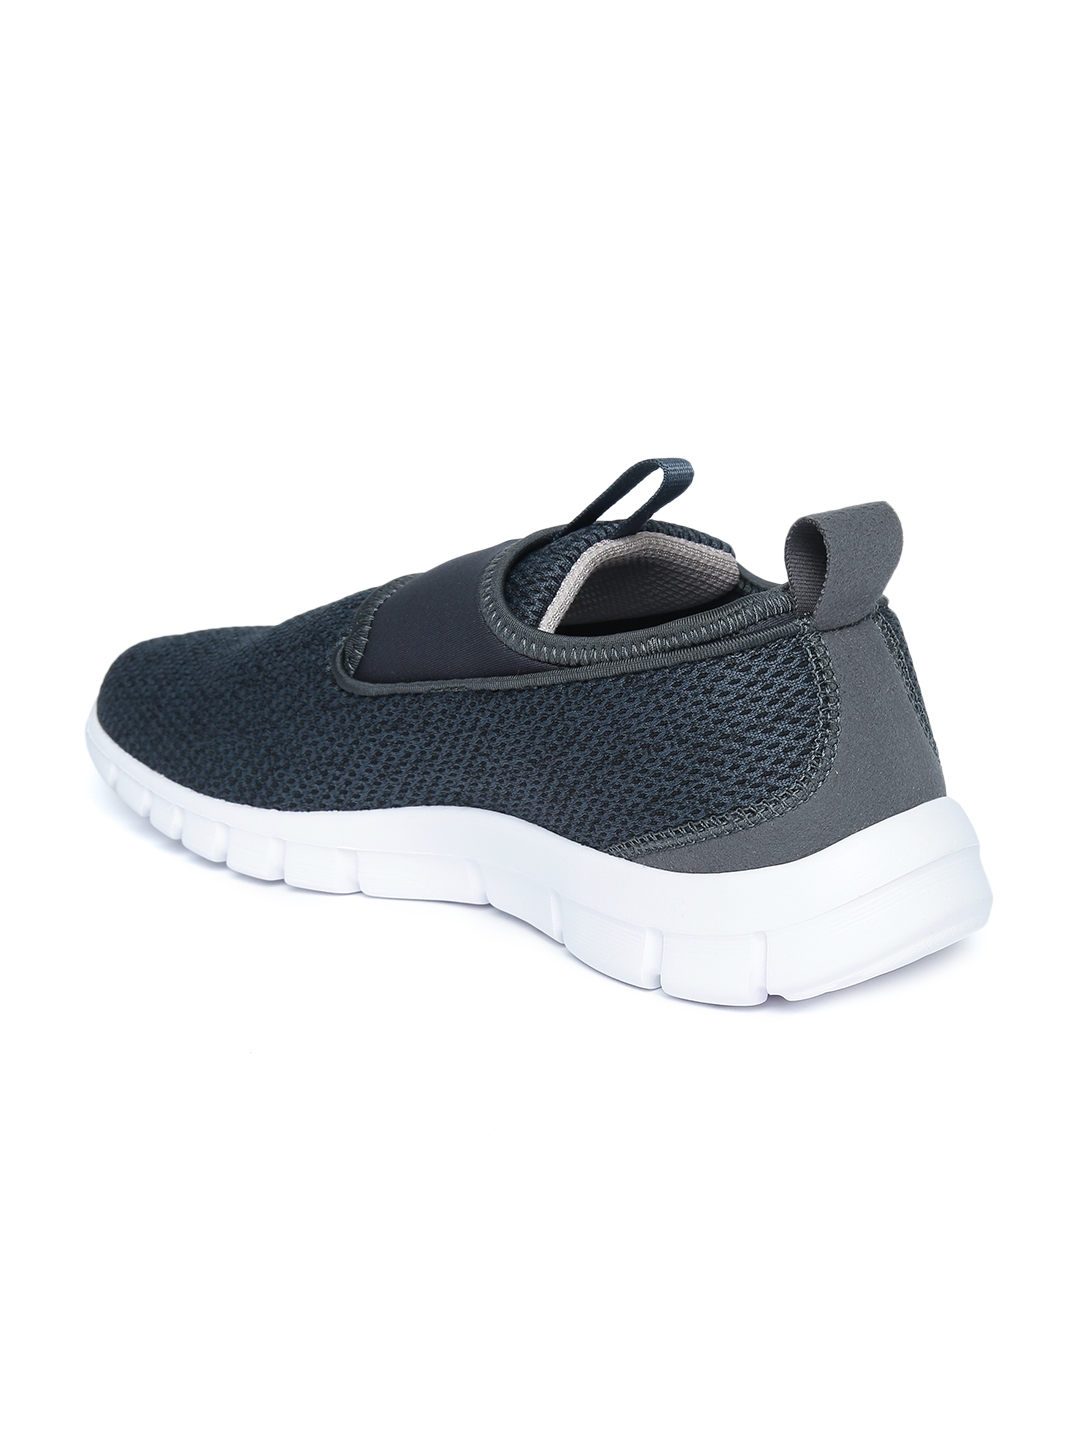 137a30d10ceb90 Buy Reebok Men Charcoal Grey TREAD WALK LITE LP Walking Slip On ...